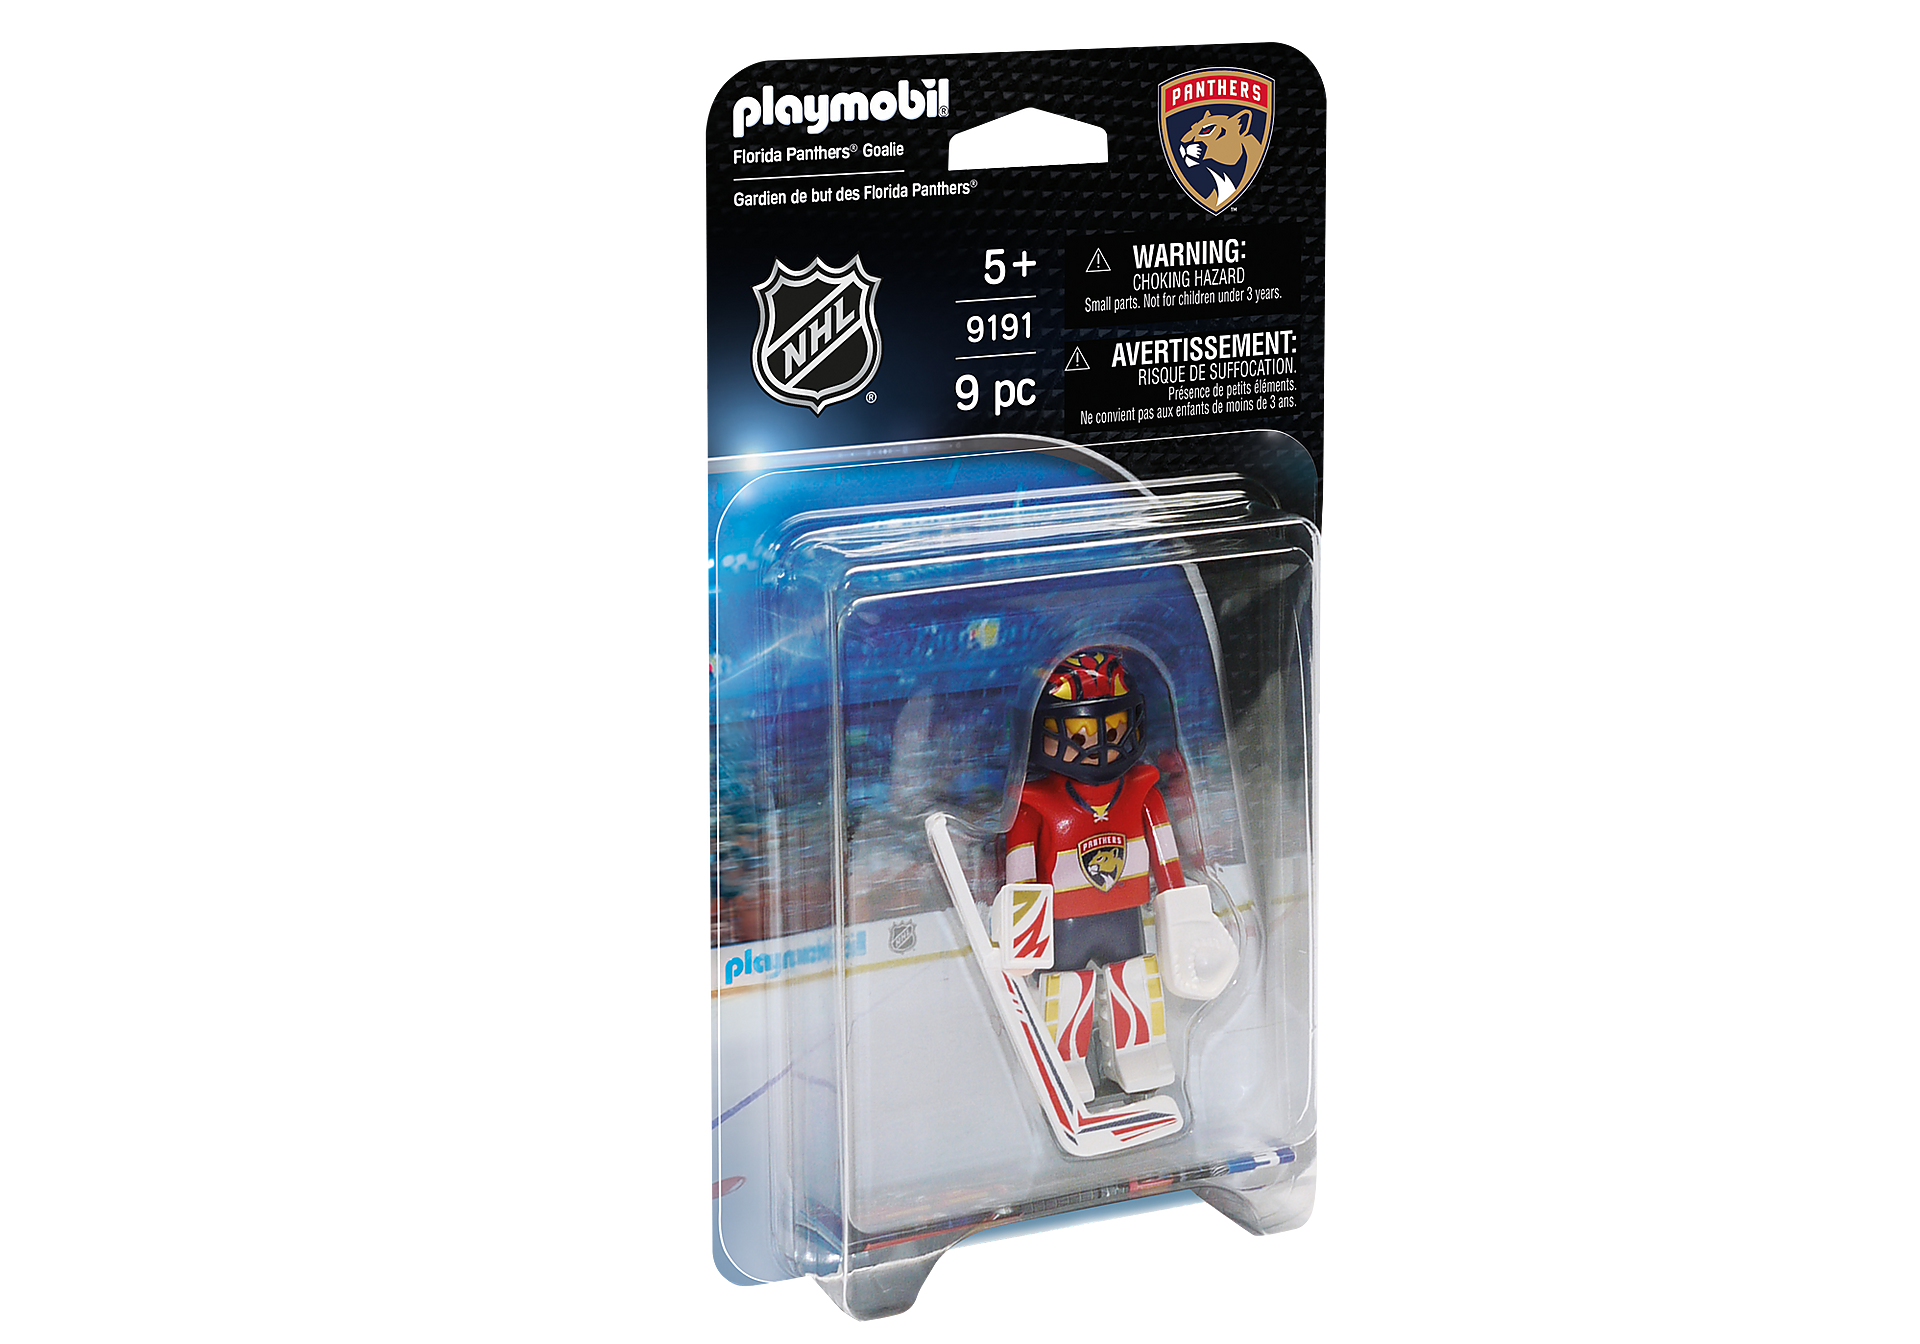 http://media.playmobil.com/i/playmobil/9191_product_box_front/NHL™ Florida Panthers™ Goalie